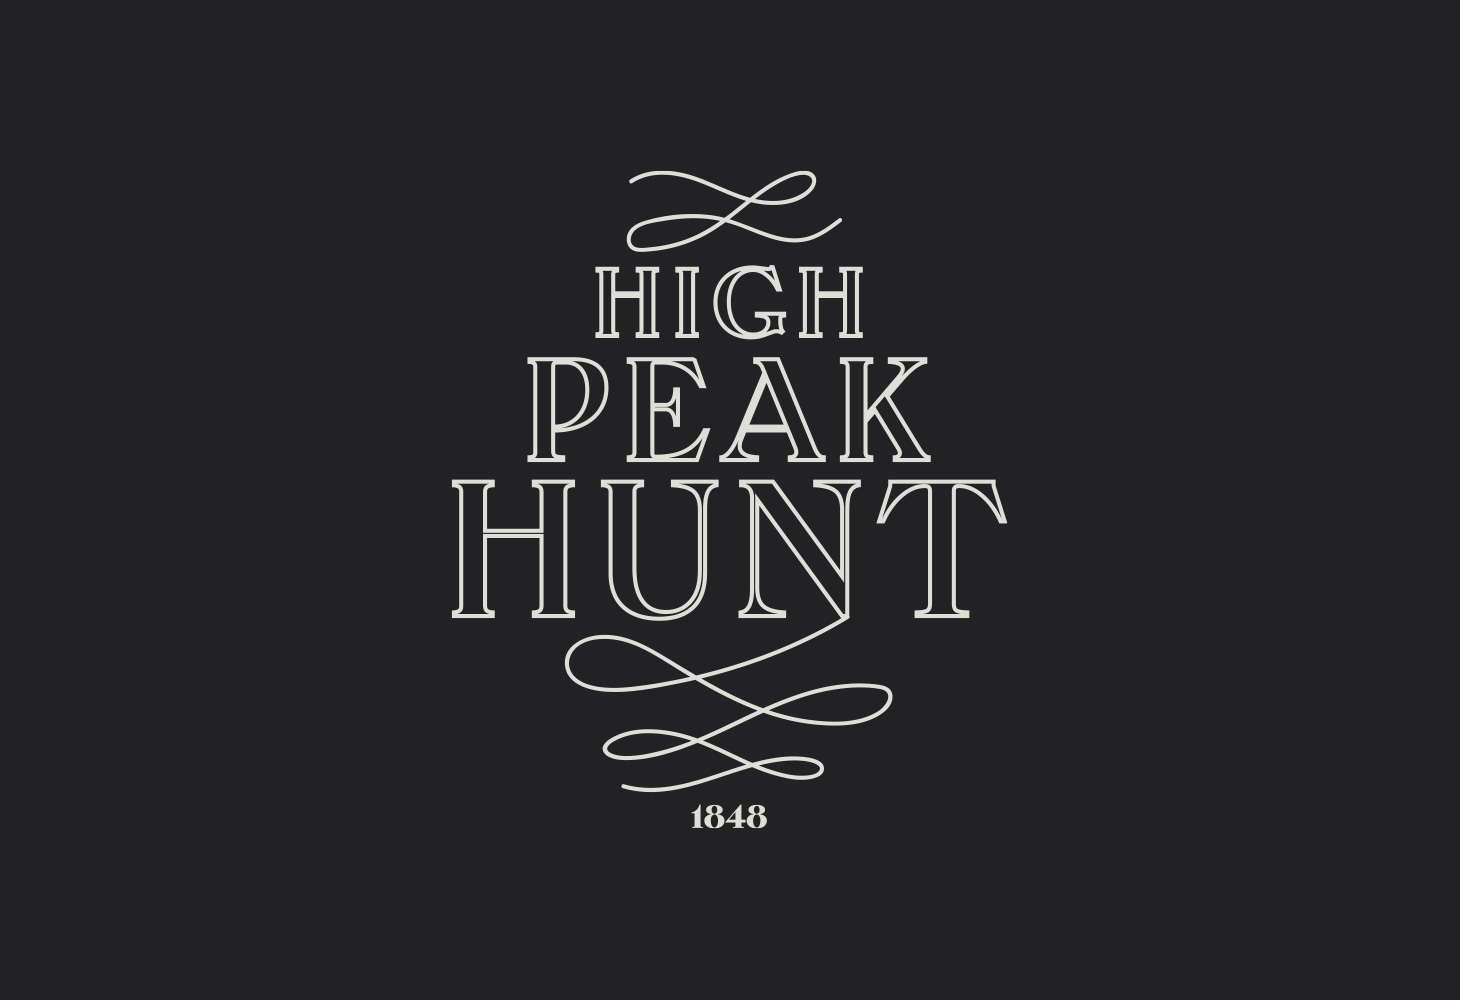 High Peak Hunt - Logomark